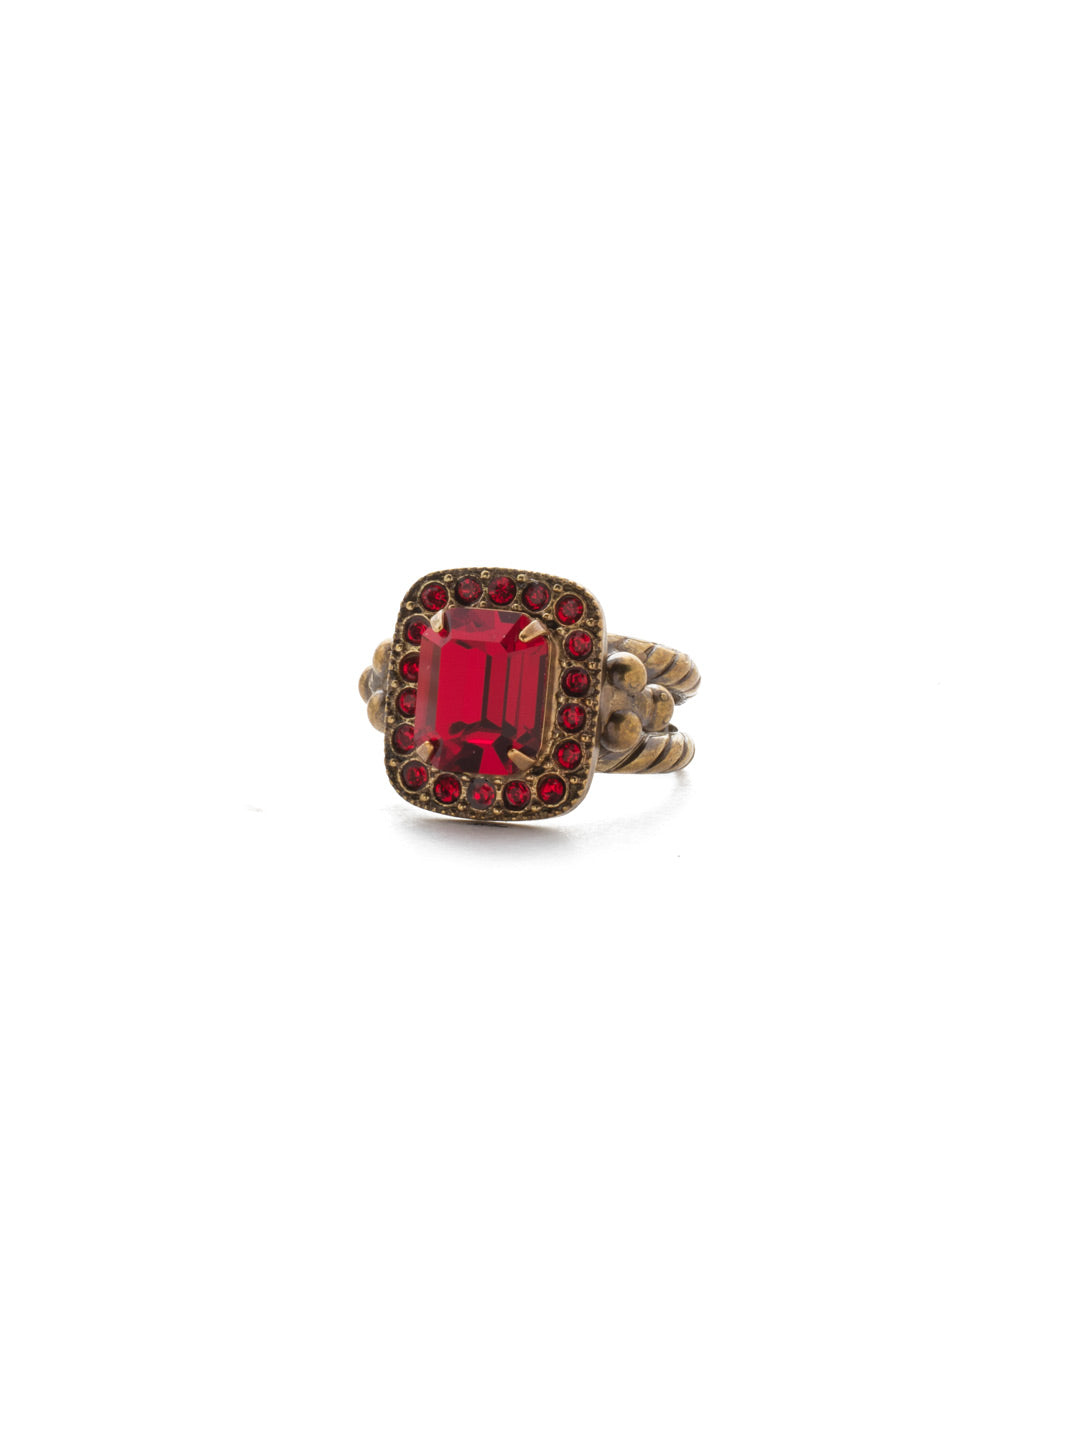 Opulent Octagon Cocktail Ring - RDQ41AGSNR